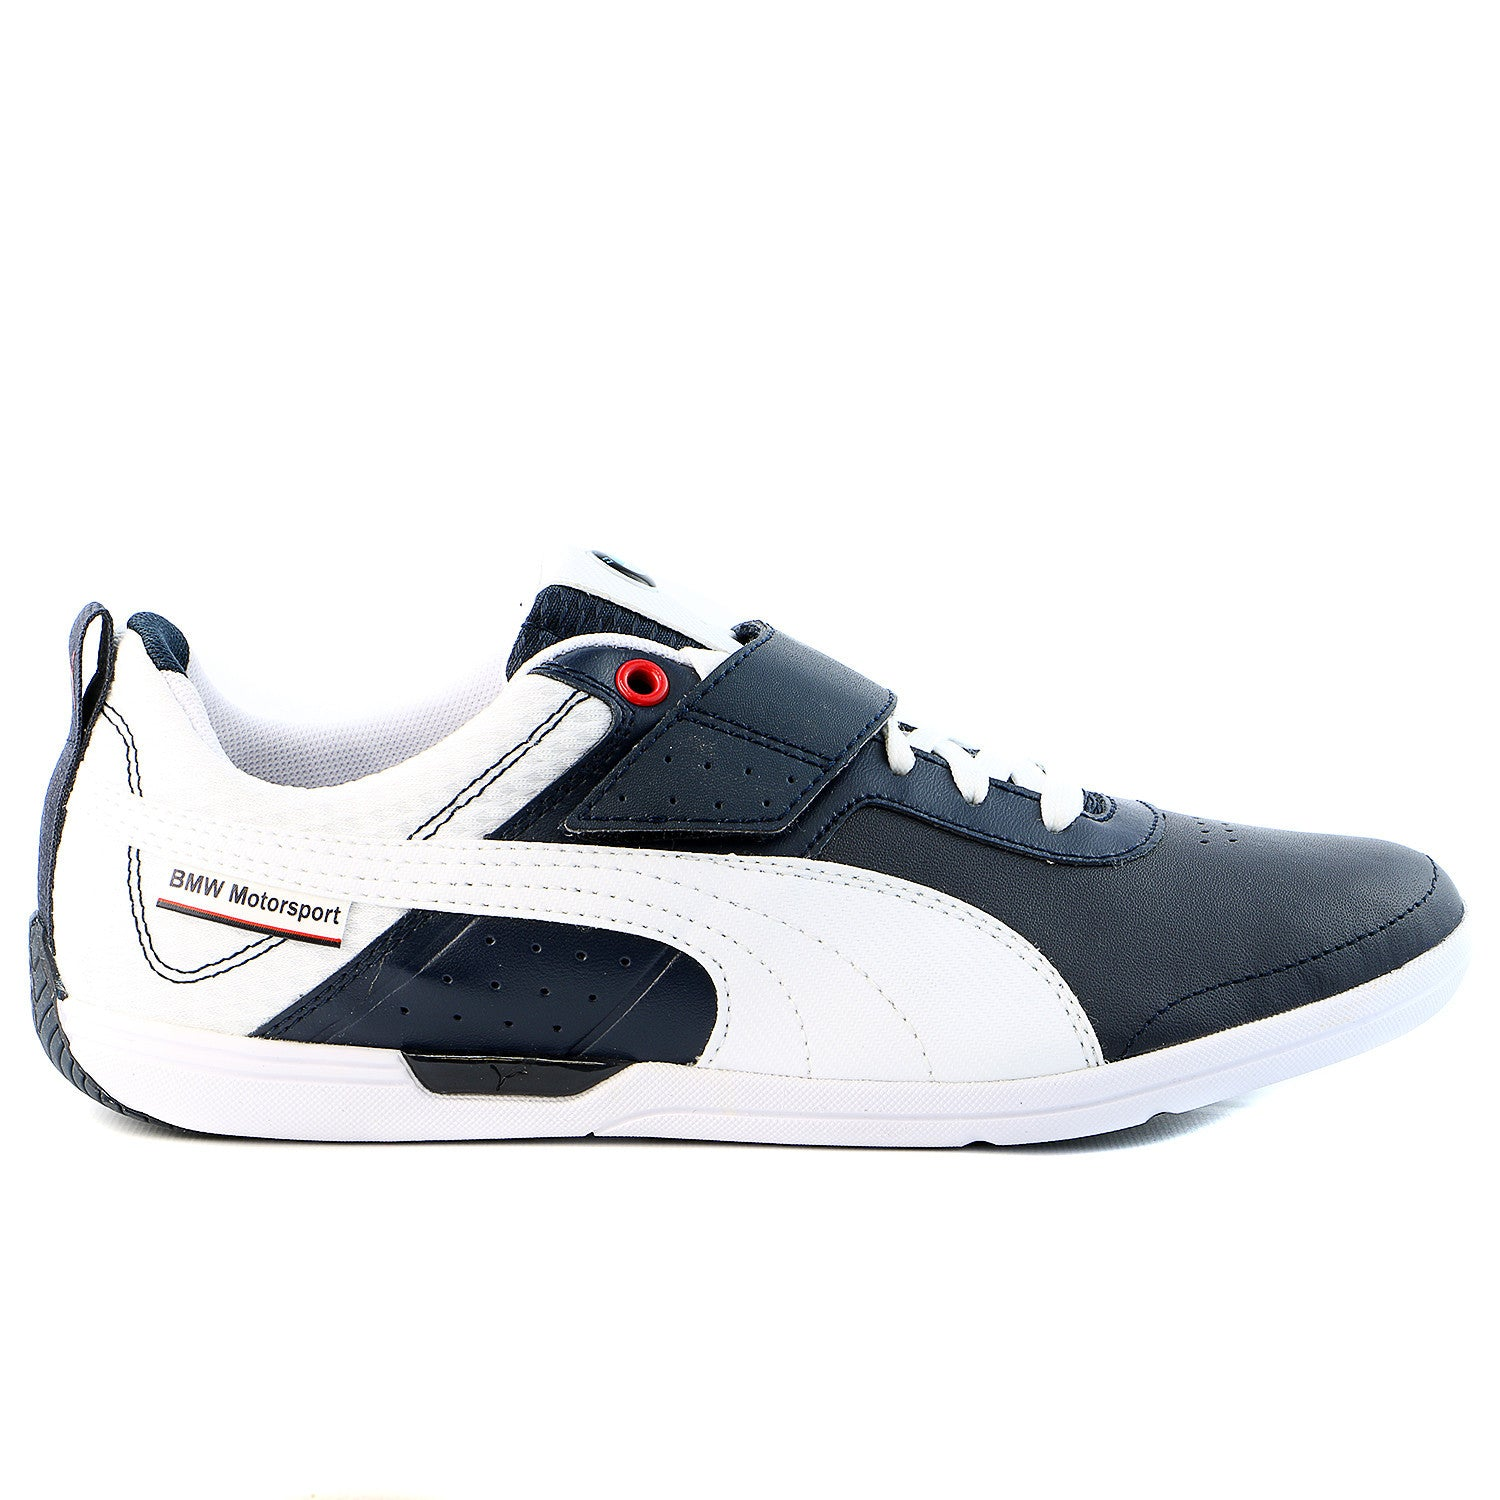 c25012caed8a Puma BMW MS MCH Fashion Sneaker Motorsport Shoe - BMW Team Blue White - Mens